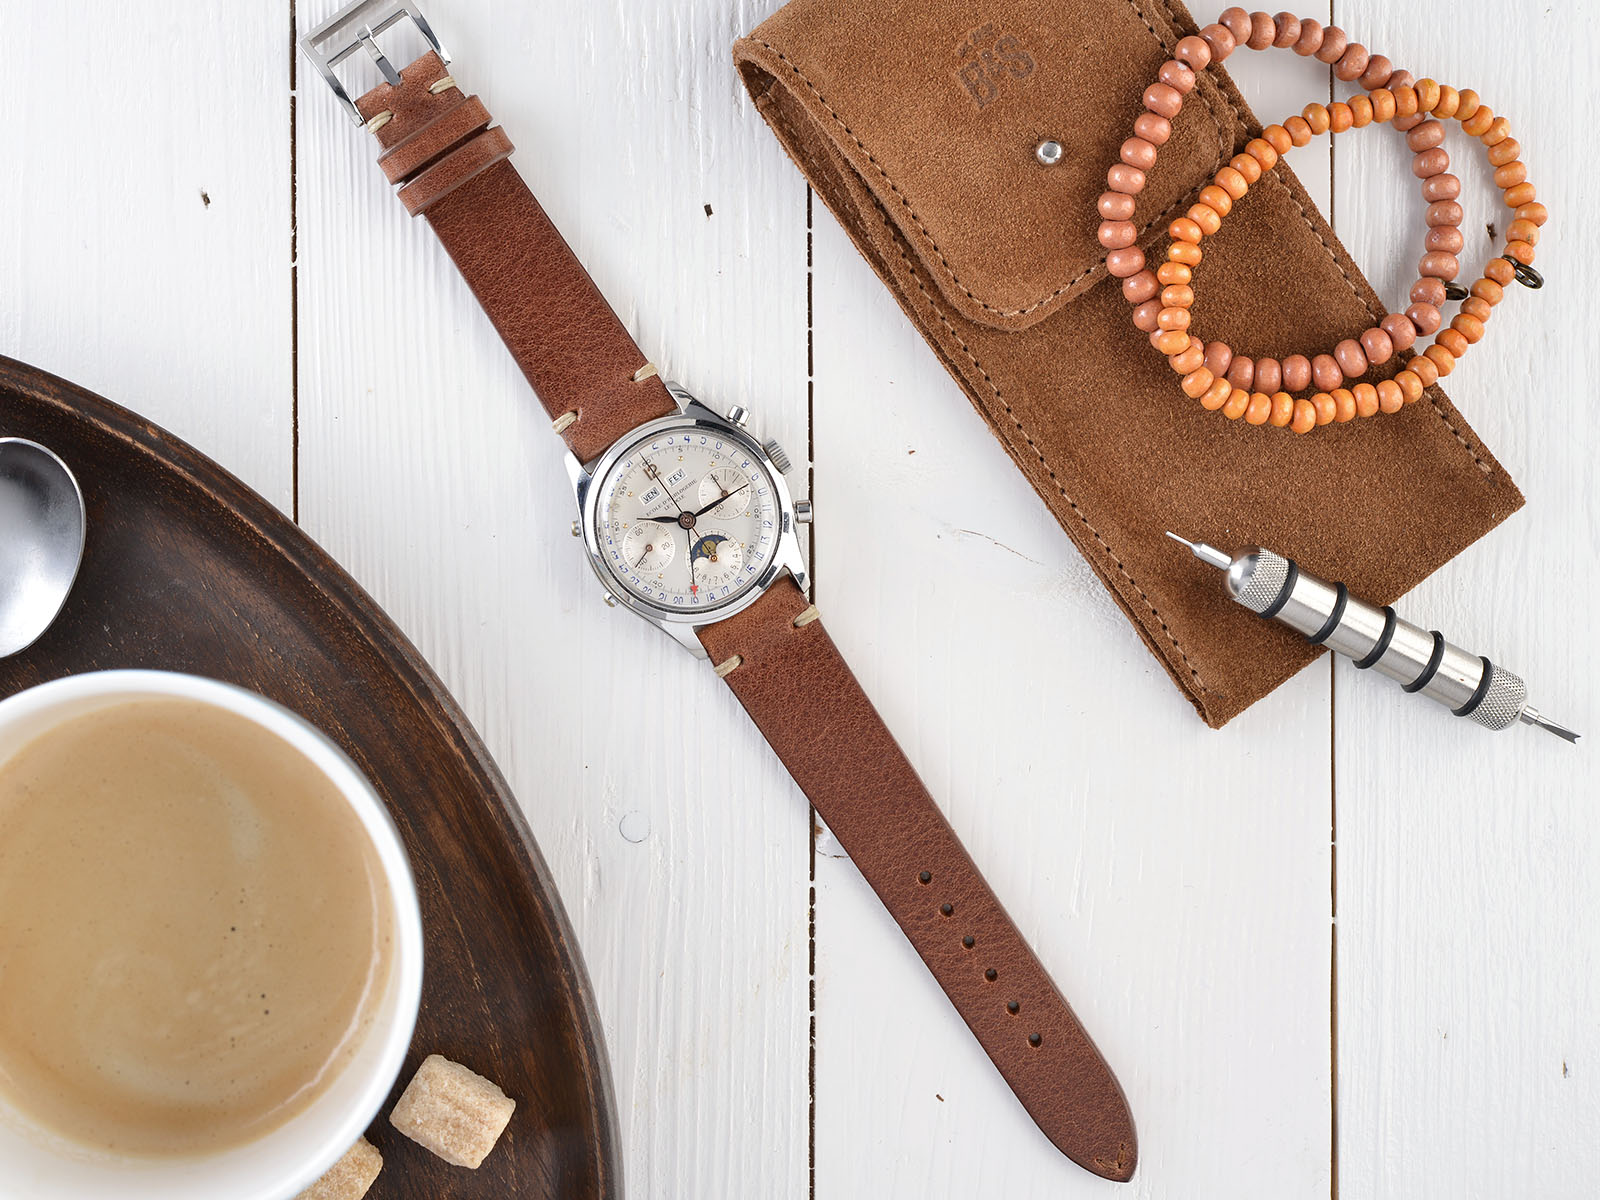 B&S Cotto Brown Watch Strap 19 mm